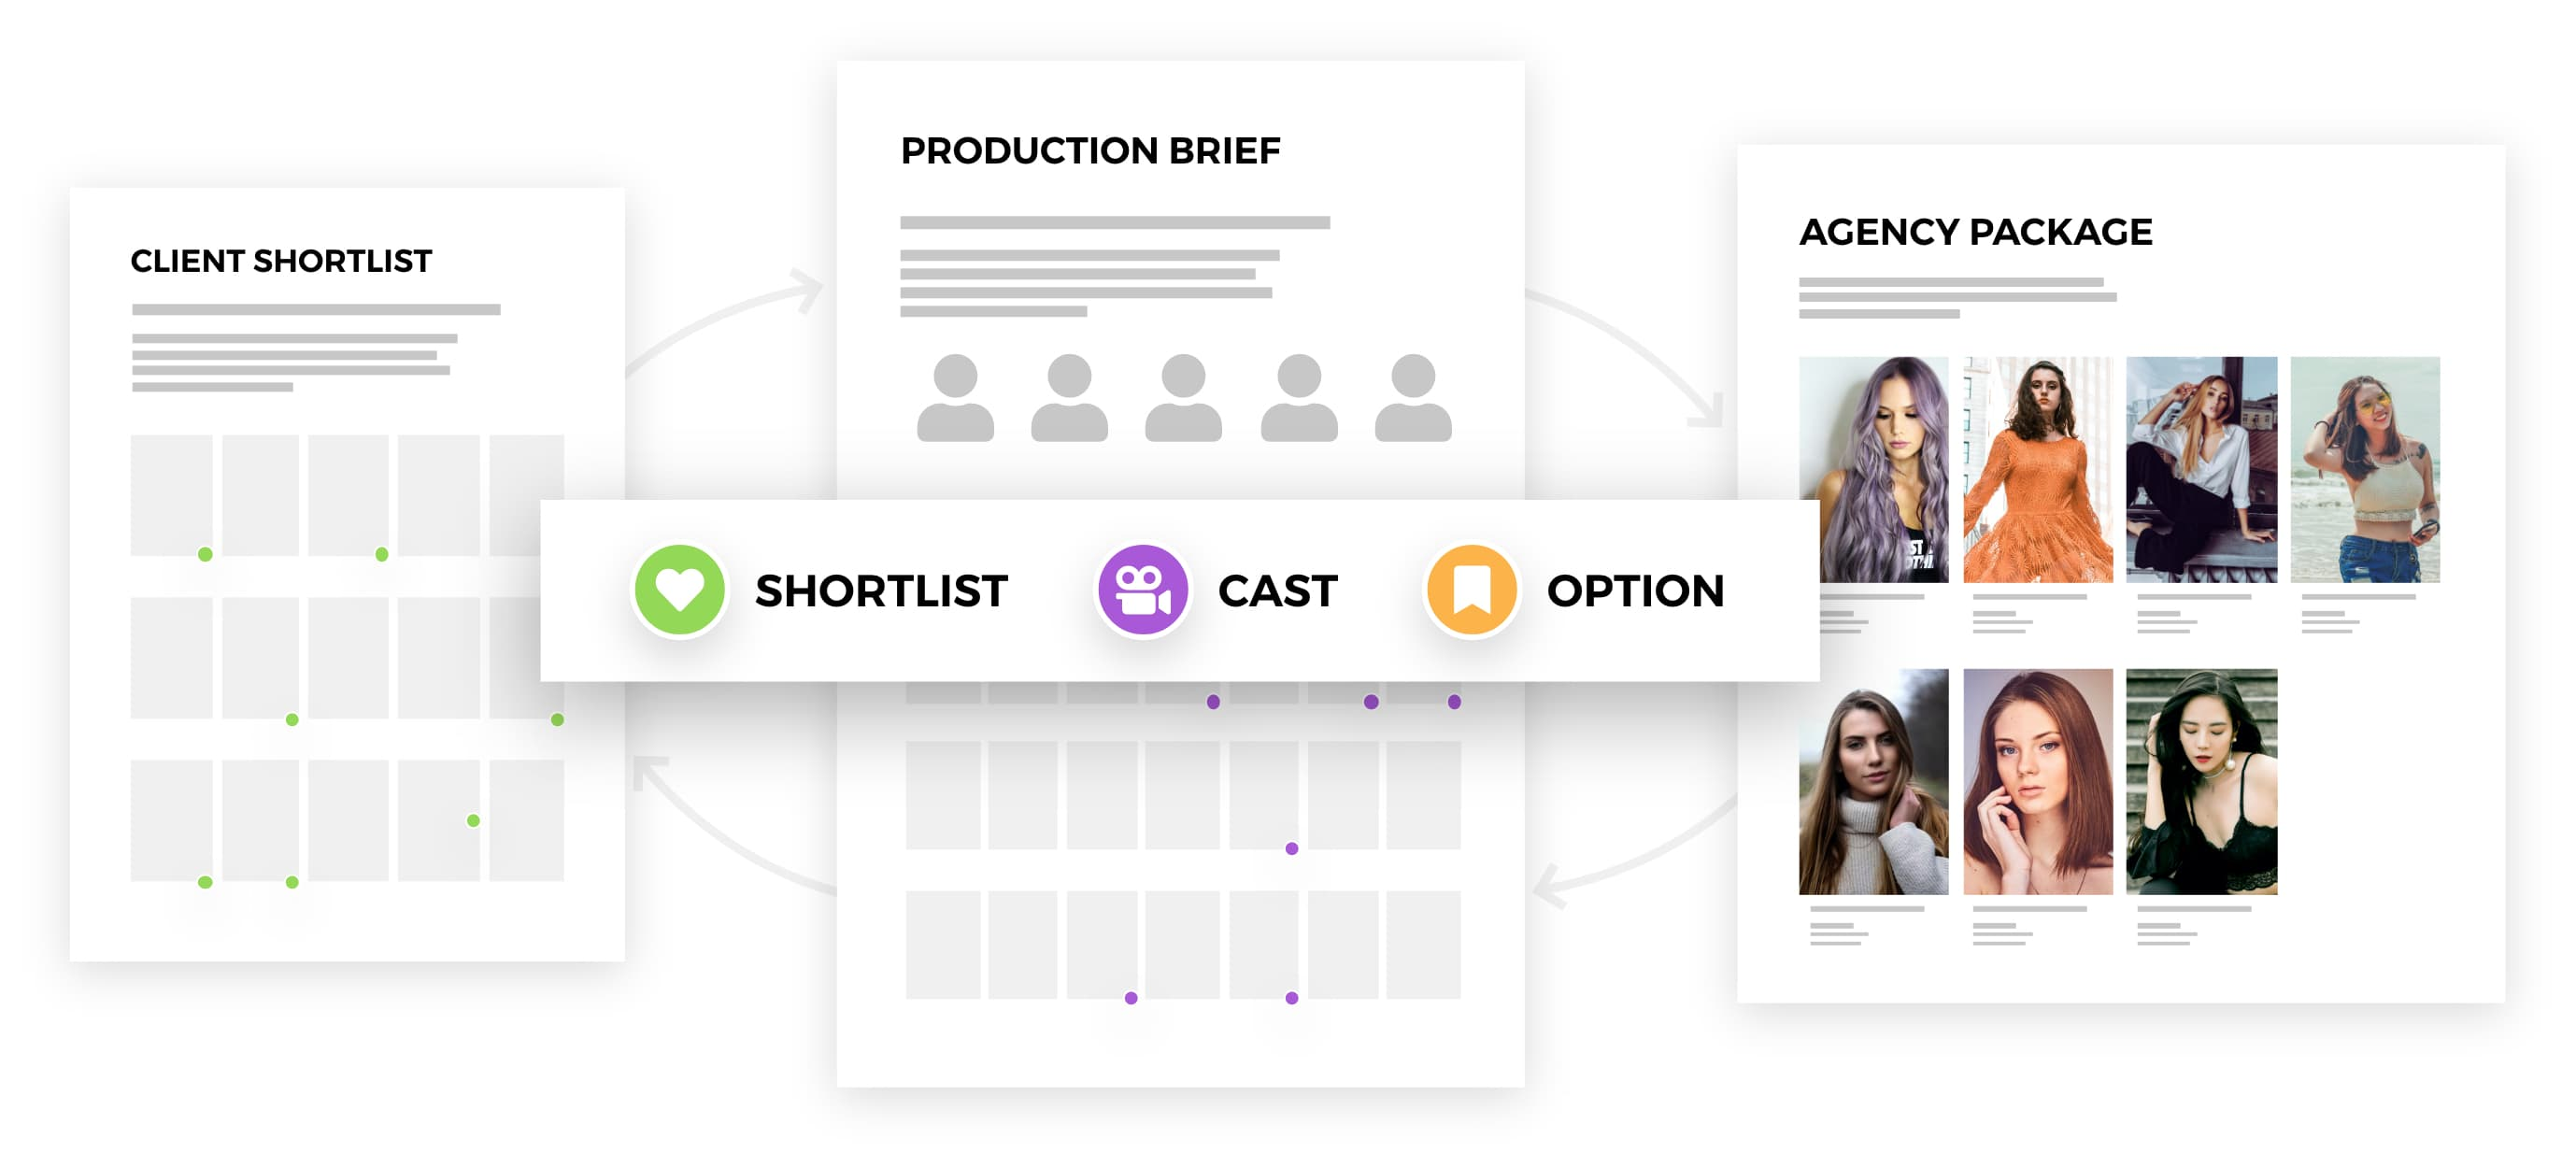 Castingpad allows casting professional to brief, cast and book